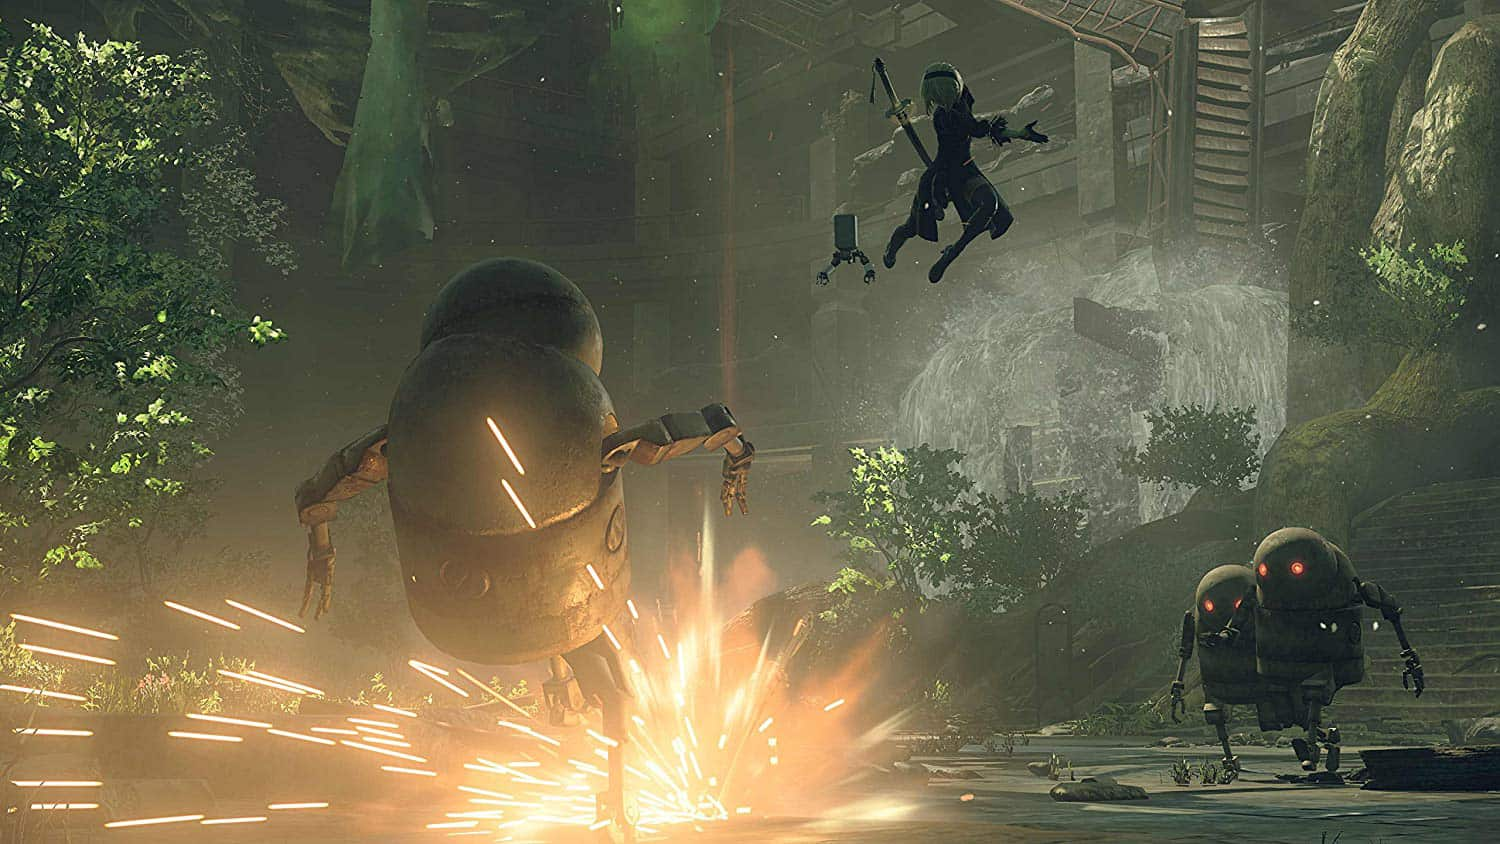 Nier Automata Review: is Nier Automata Game worth it